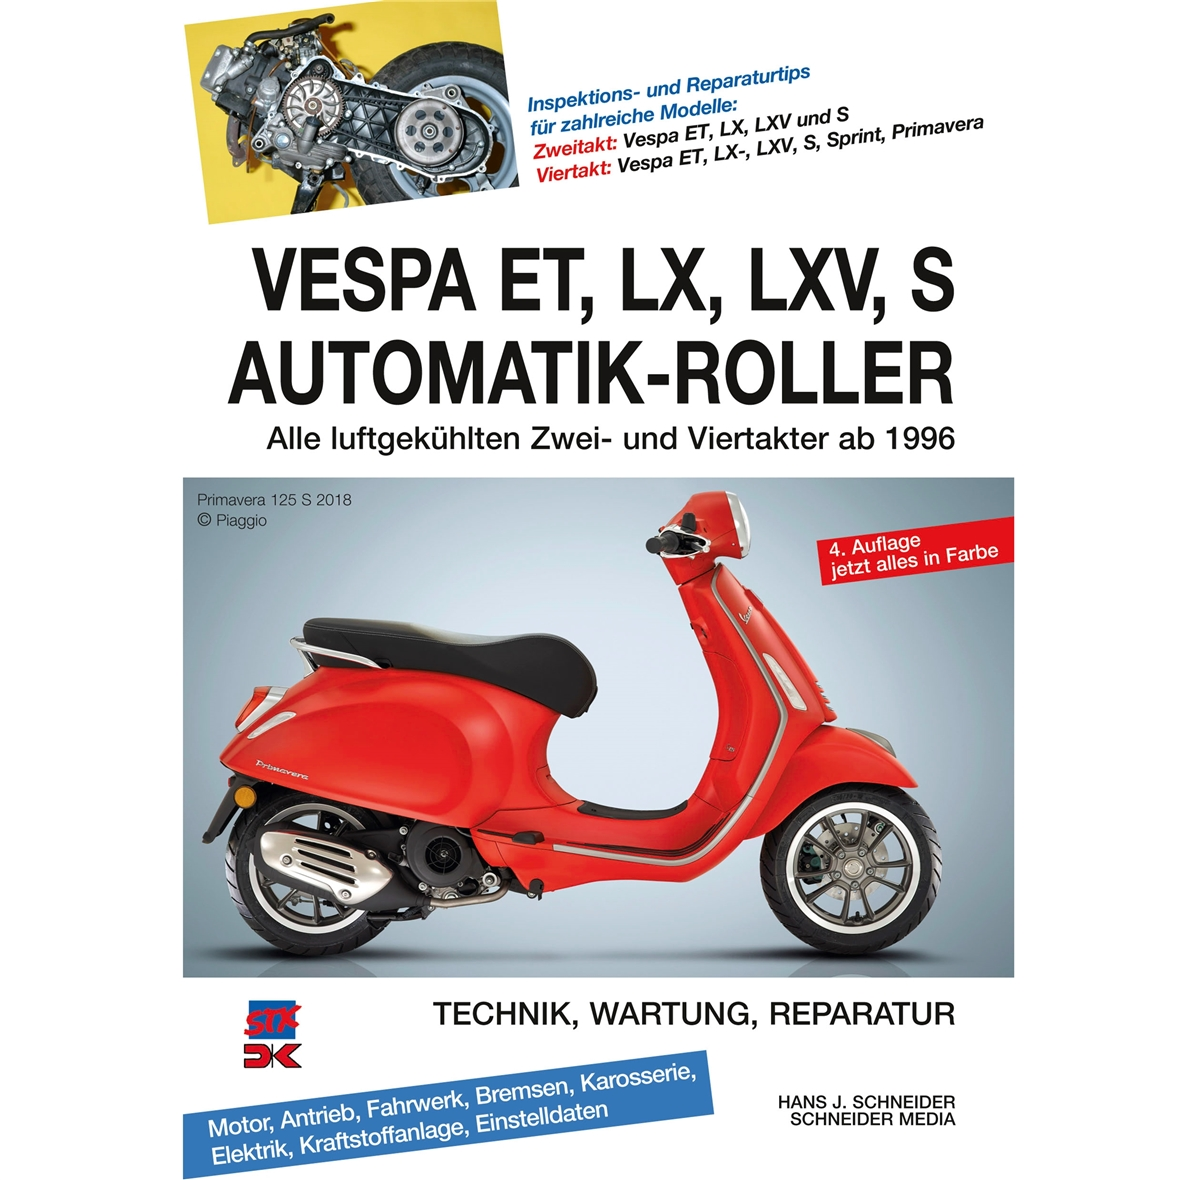 """Product Image for 'Hand Book """"VESPA ET, LX, LXV, S Automatic Scooter"""" technics, service, repair, all air cooled 2-stroke and 4-stroke since 1996Title'"""